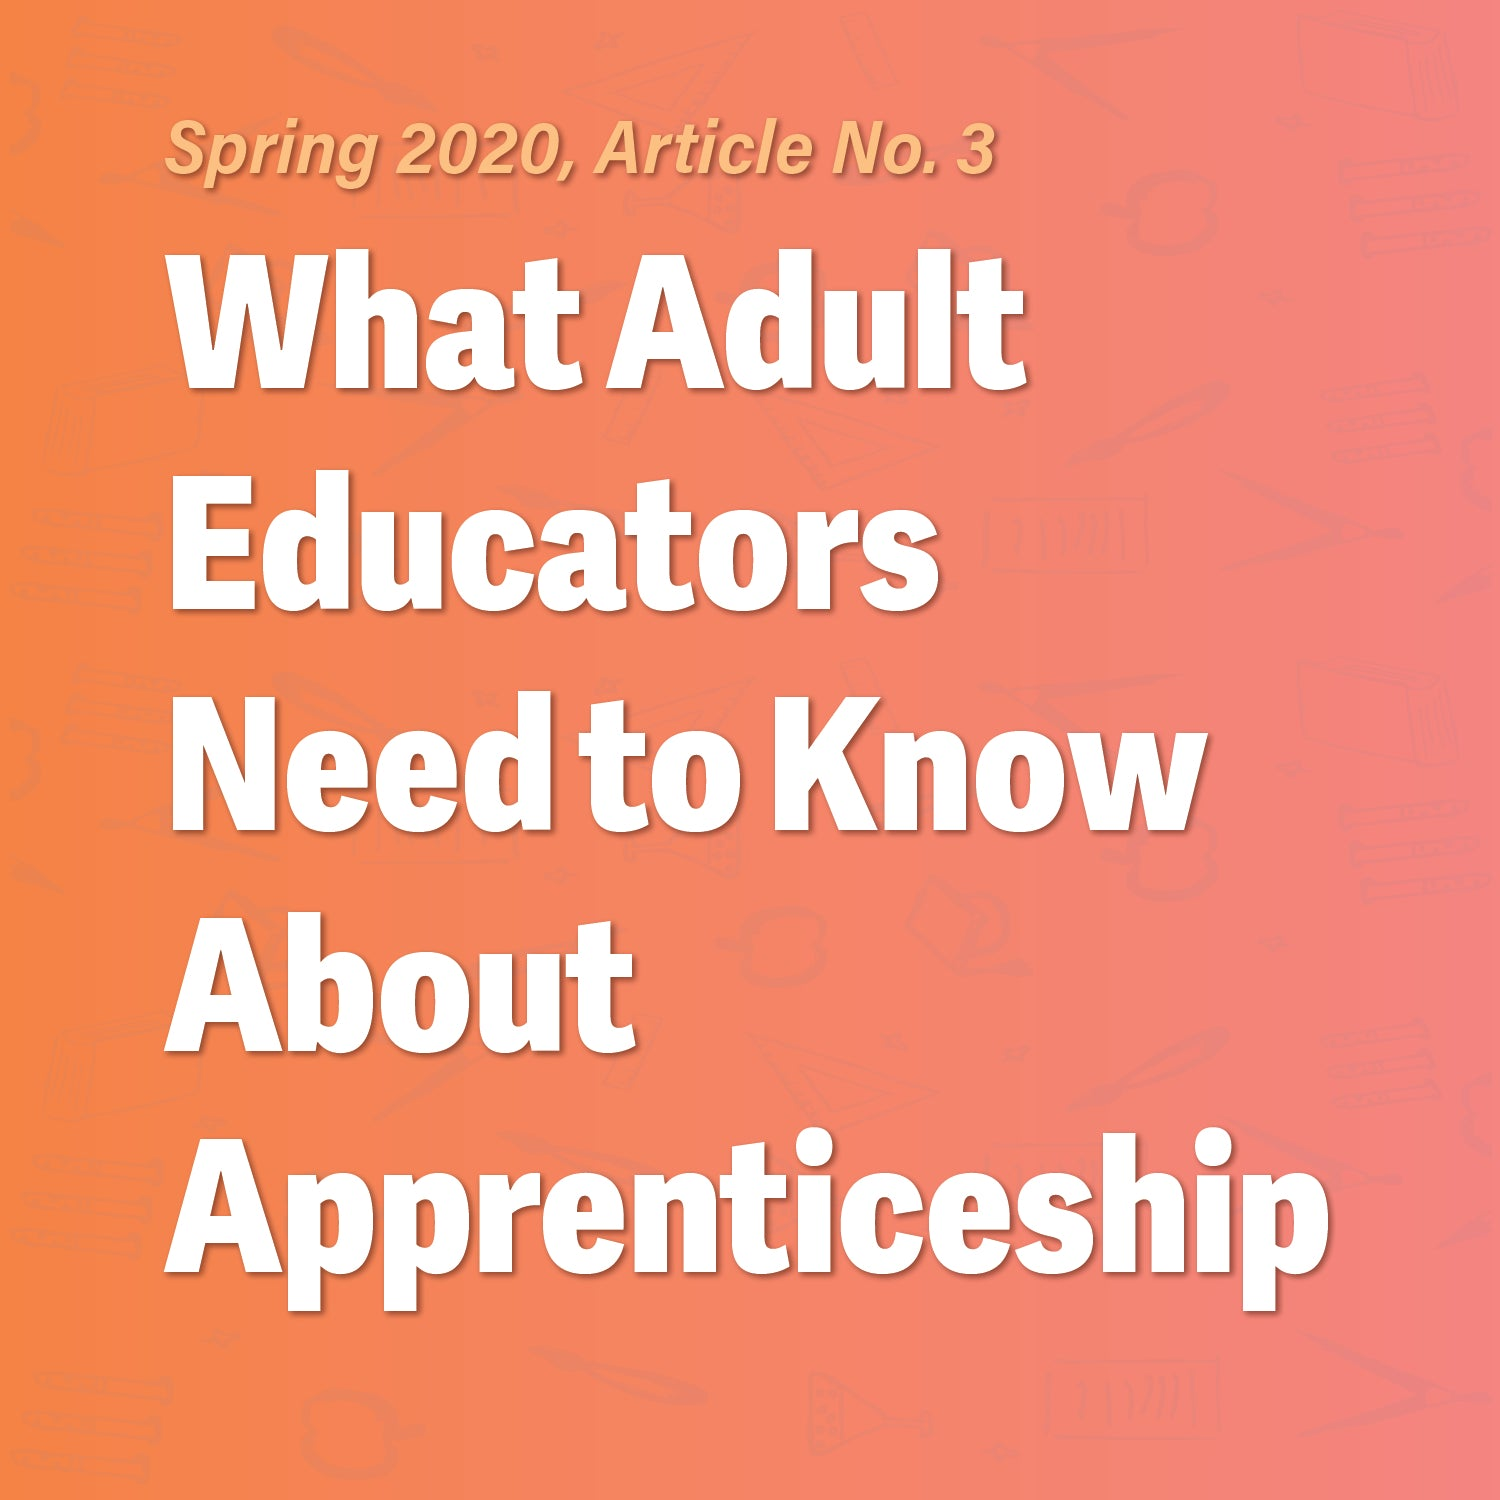 What Adult Educators Need to Know About Apprenticeship